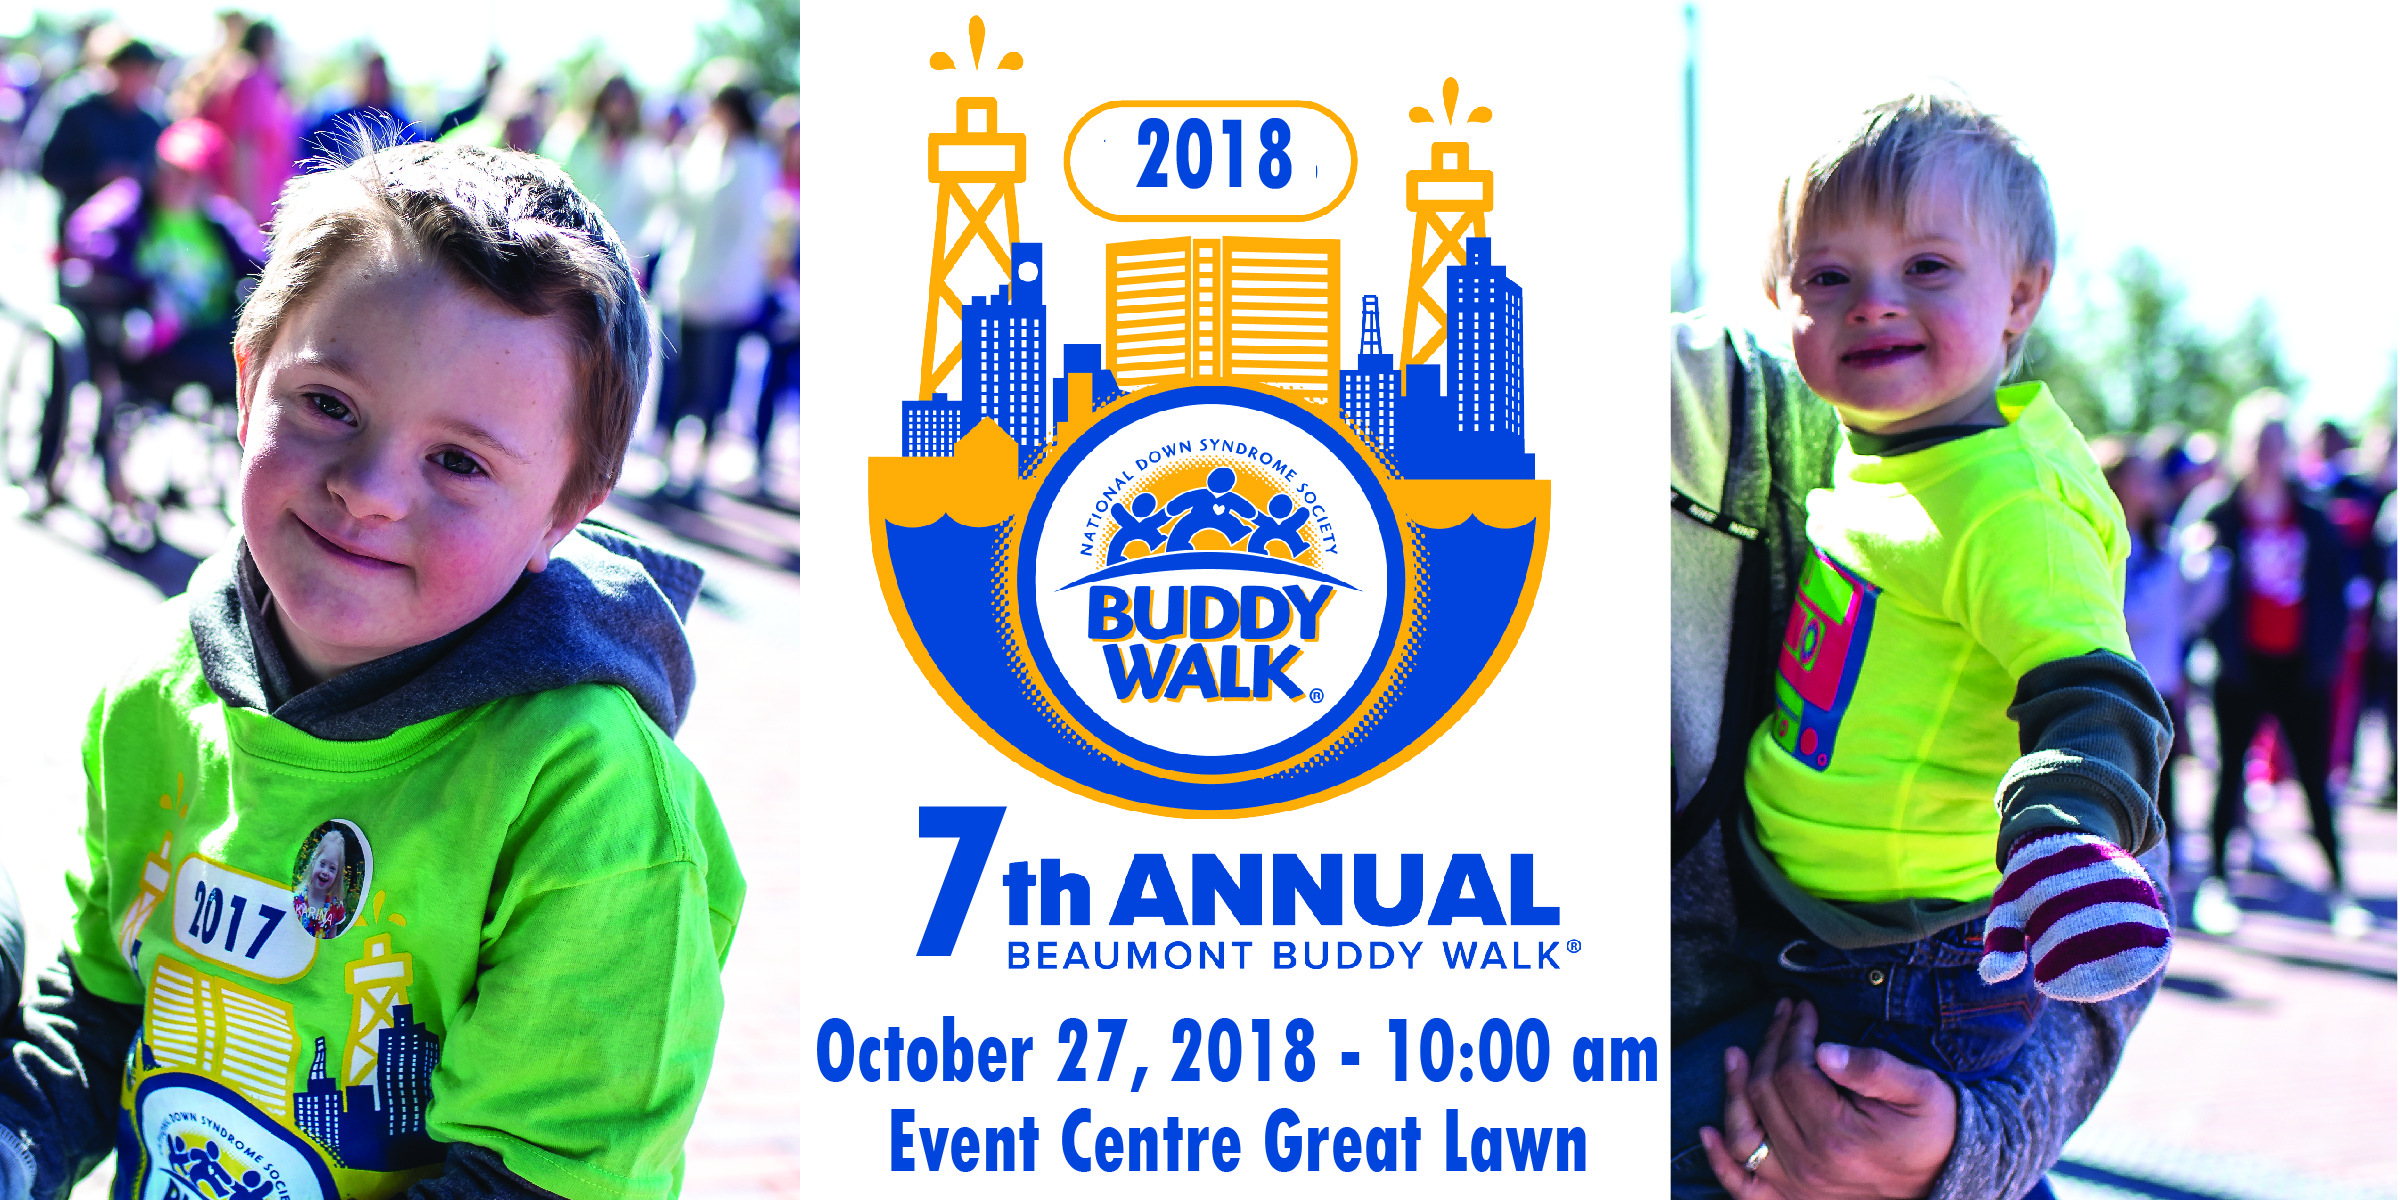 Beaumont Buddy Walk 2018